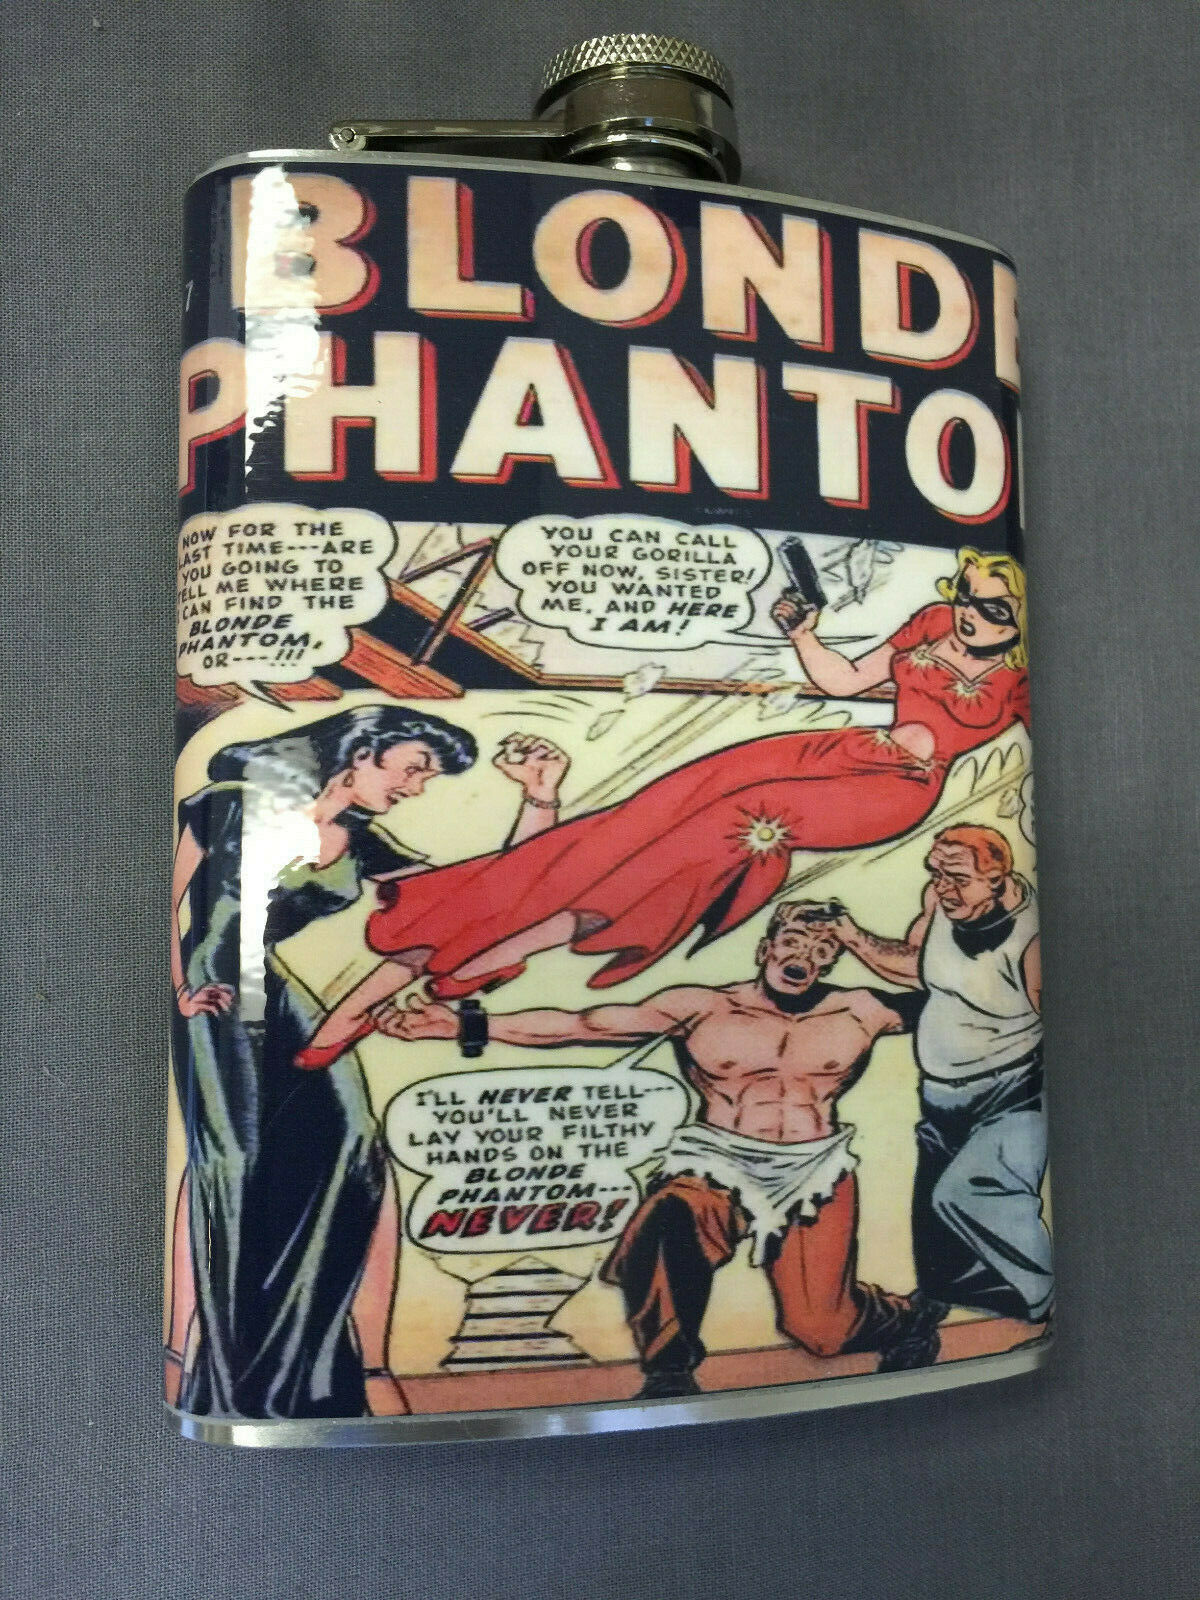 Blonde Phantom Comic Flask 8oz Stainless Steel Drinking Whiskey Clearance item